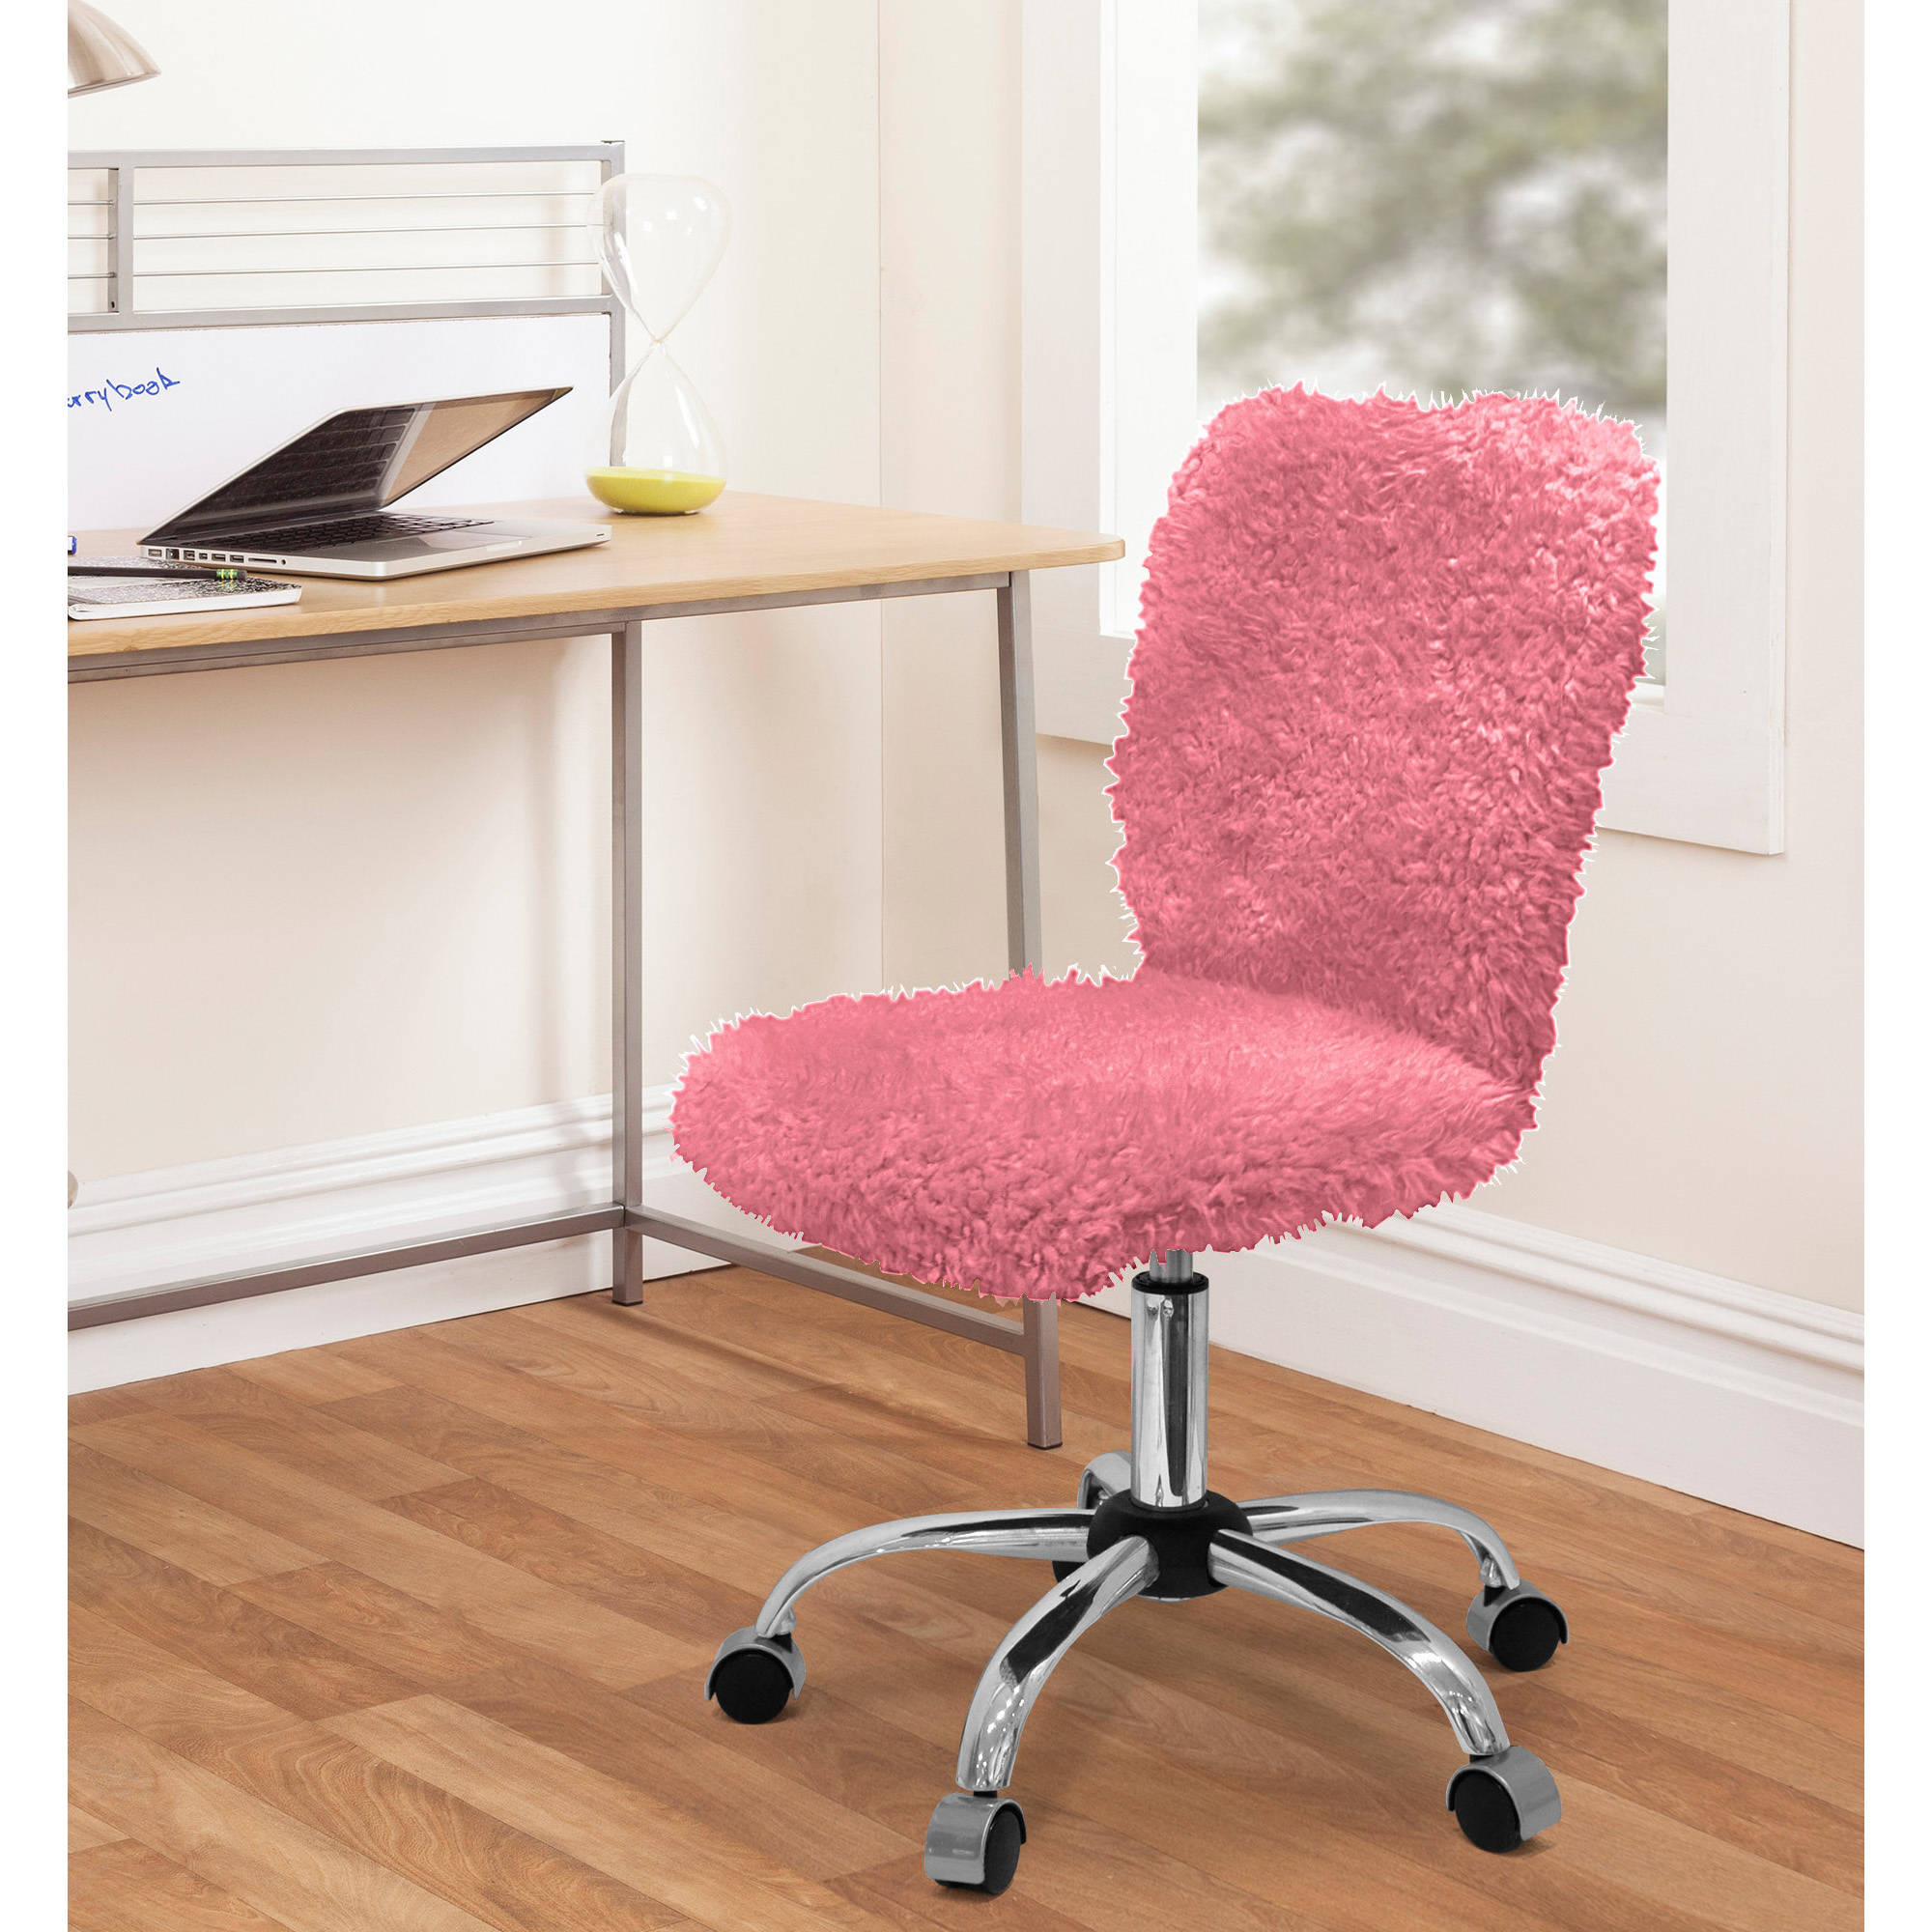 colorful feminine office furniture. Colorful Feminine Office Furniture. Furniture